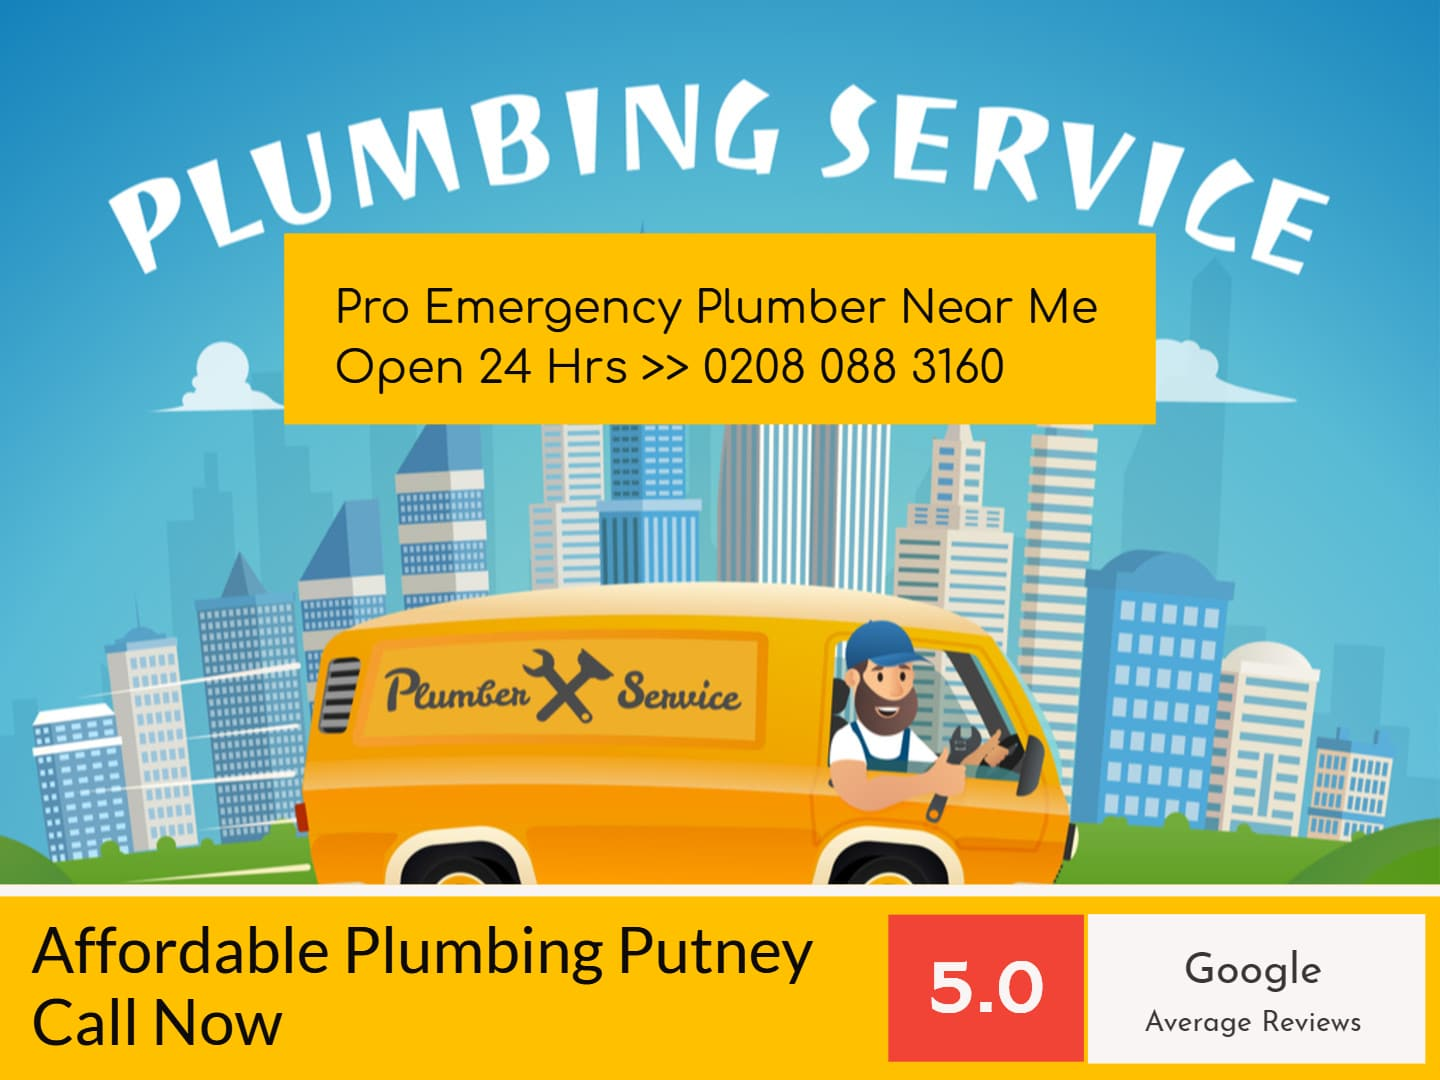 Plumber Charge - Affordable Plumbing Putney